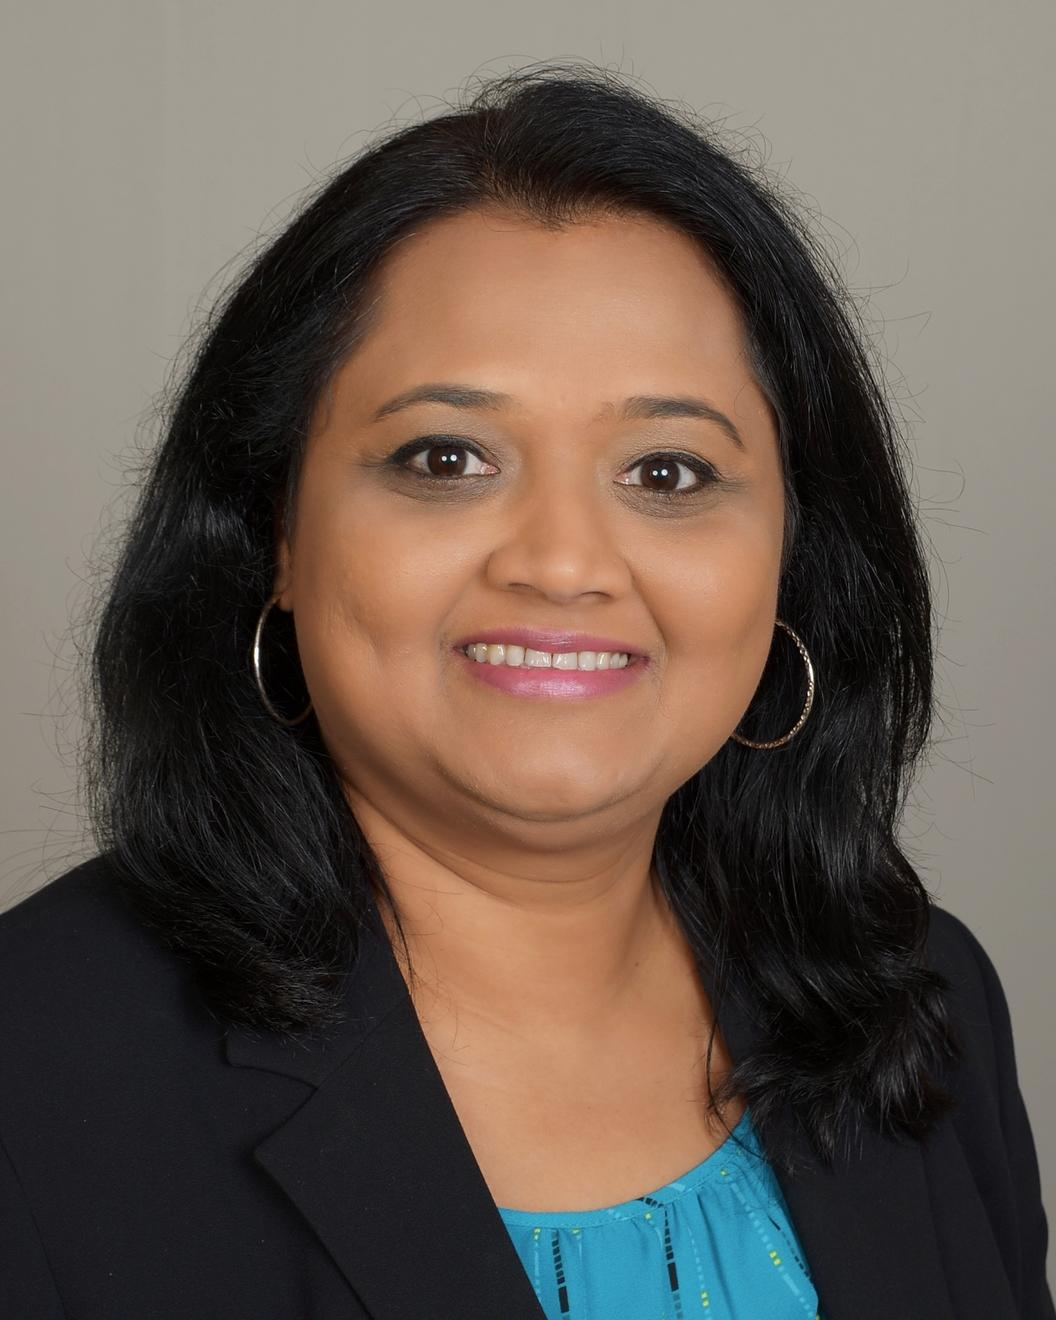 SONALI A. AMODWALA Financial Professional & Insurance Agent